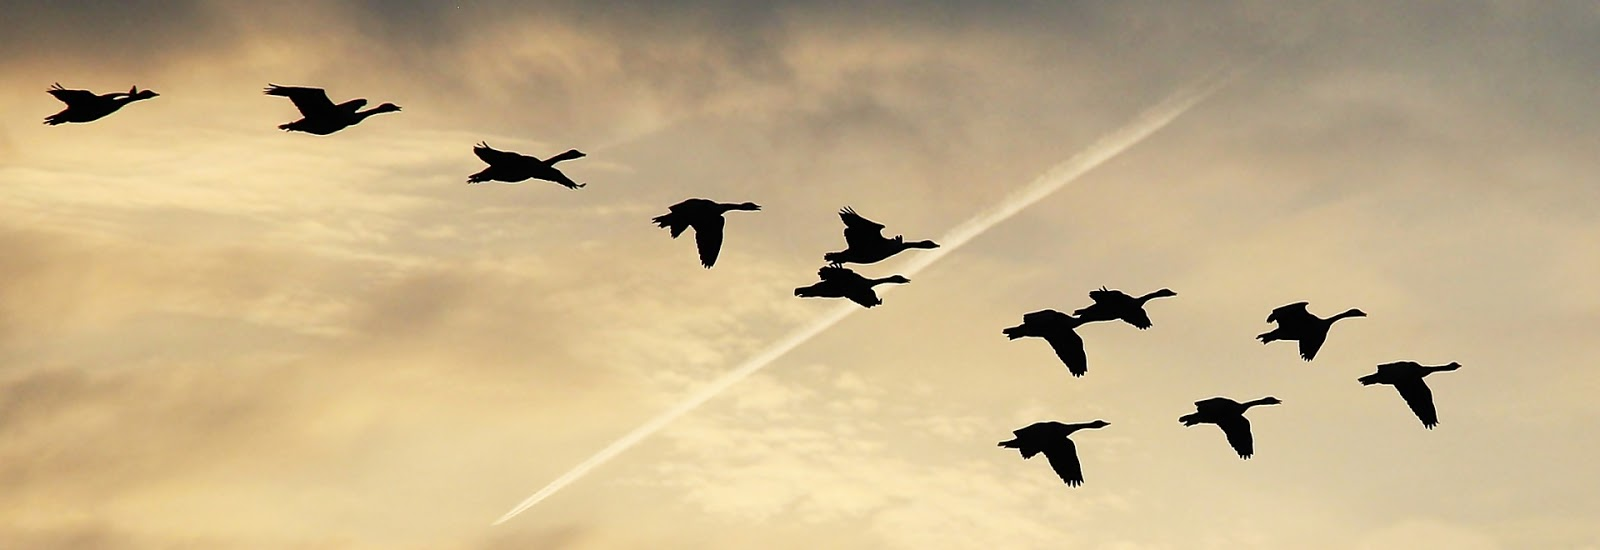 Formation of Geese